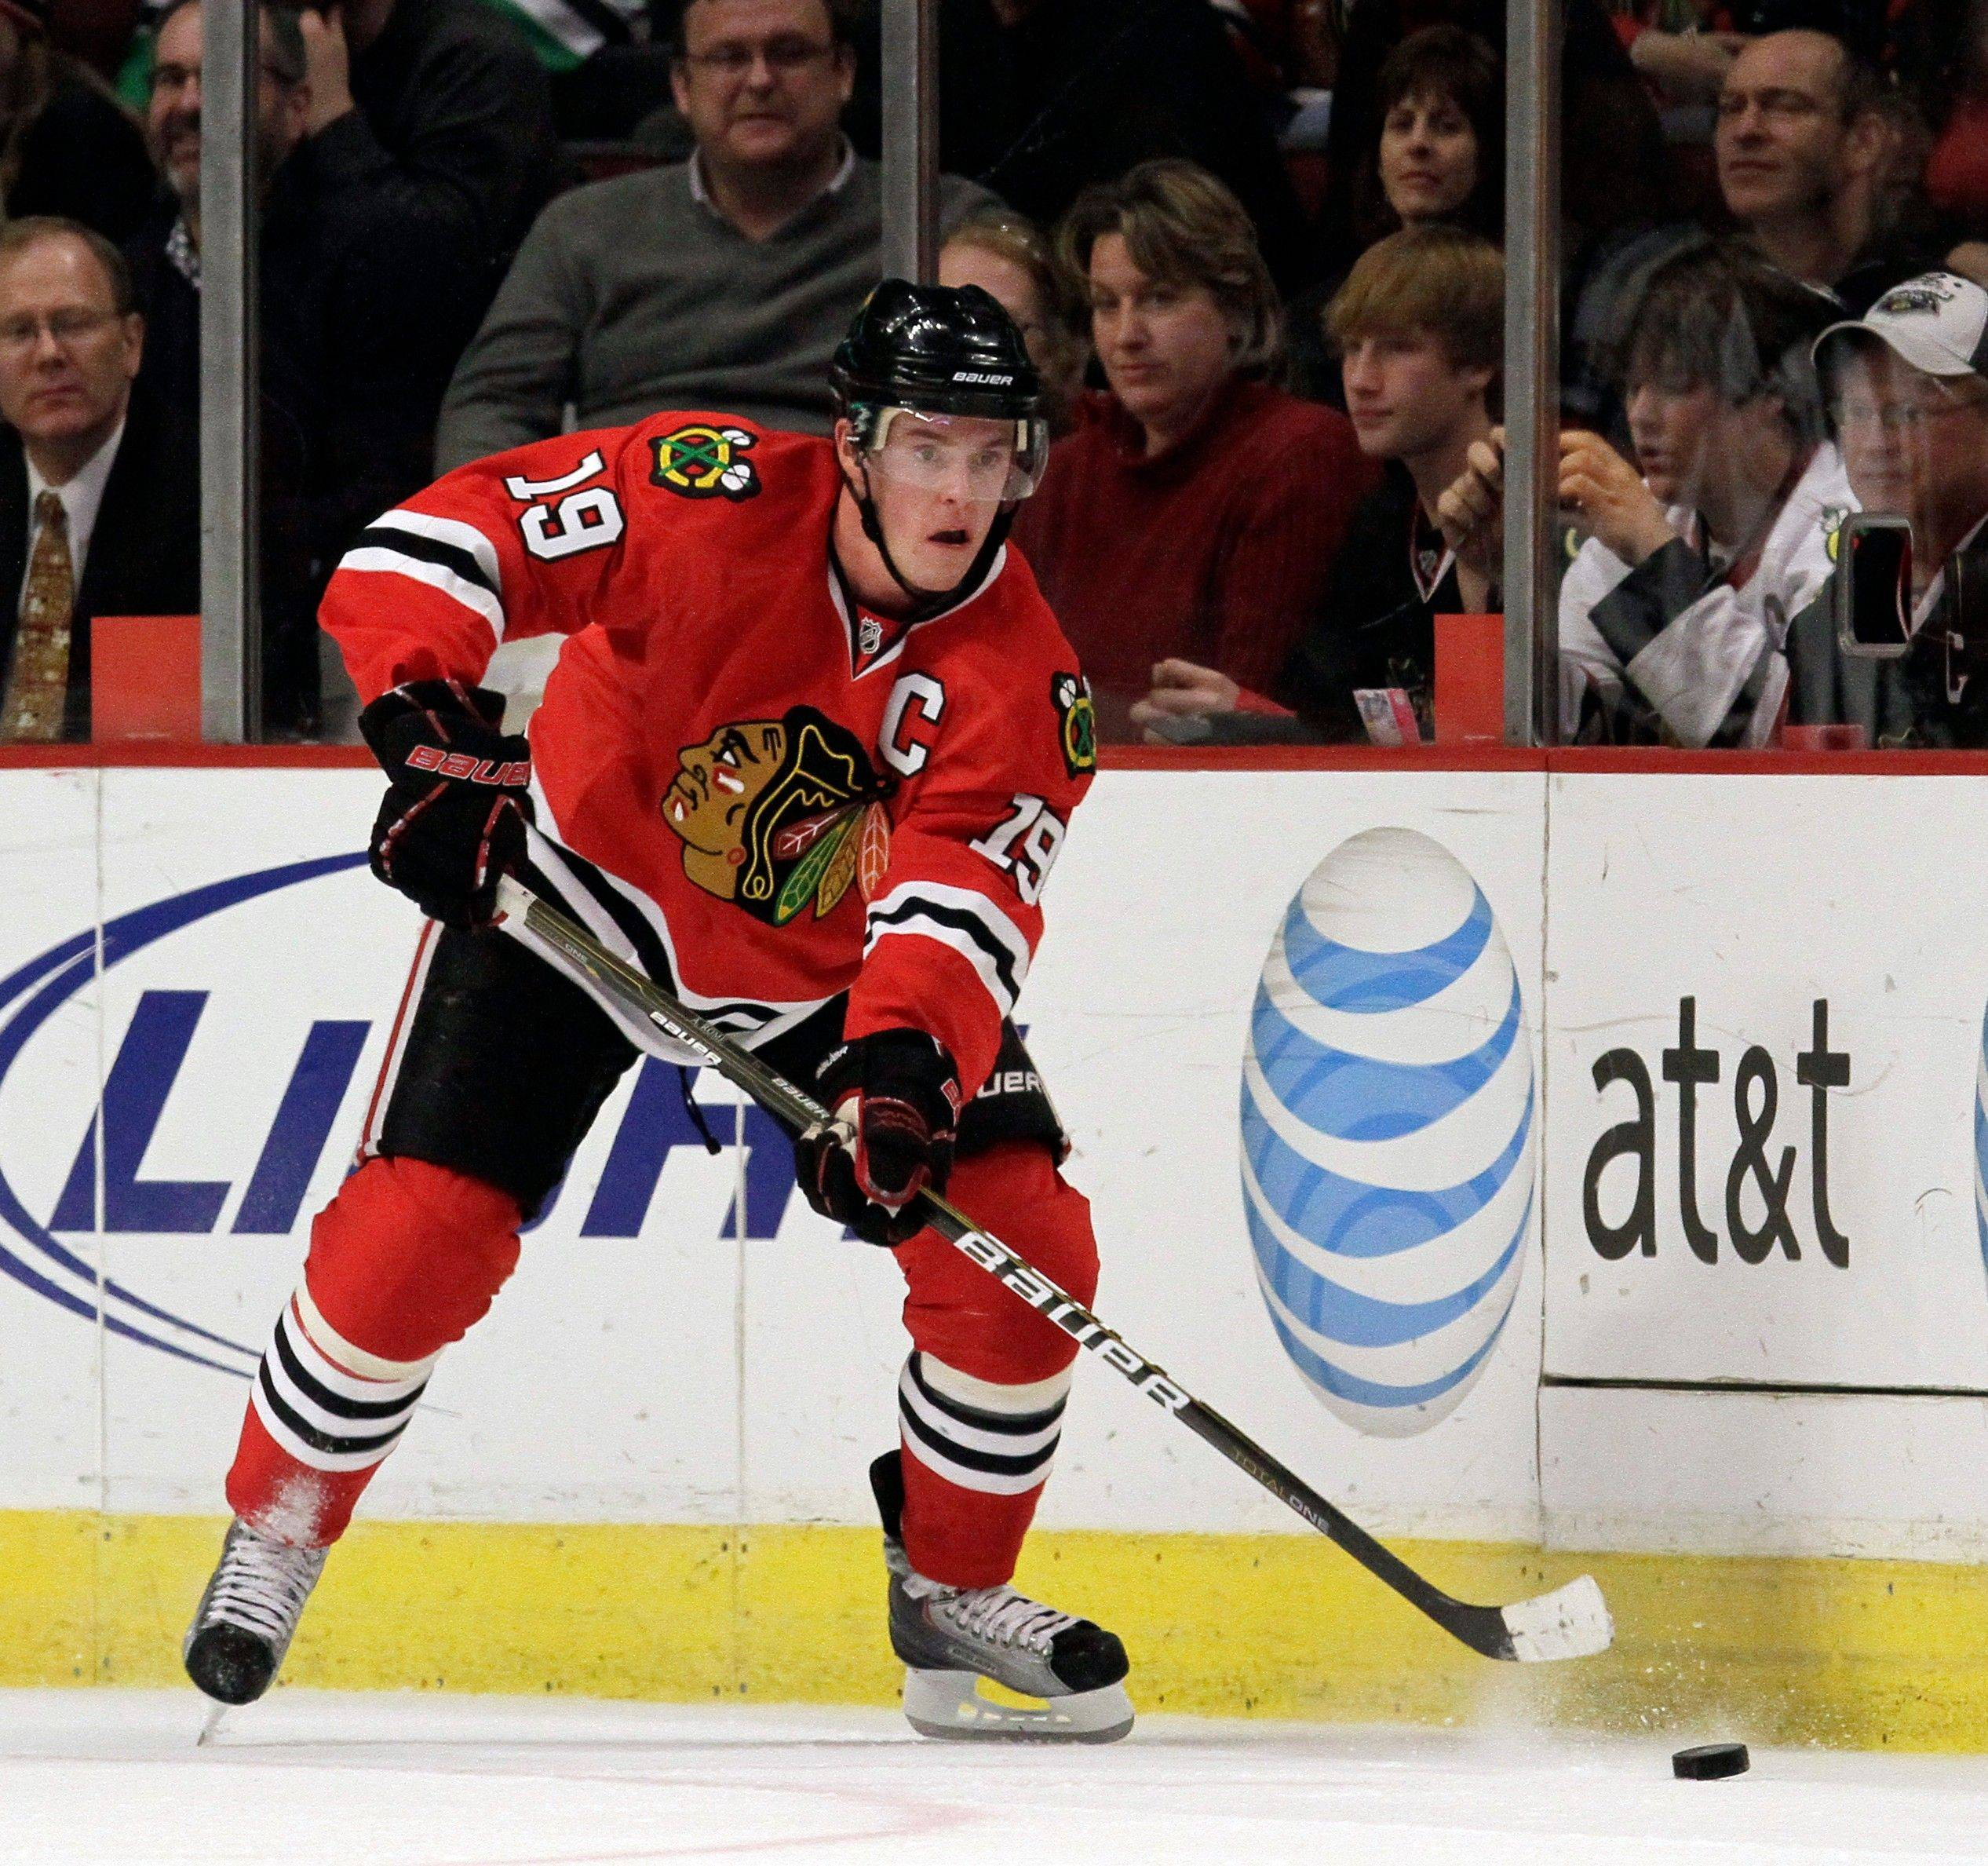 When Jonathan Toews says he's never been more excited to play a hockey season than now, it gets everyone pumped for a big year, says Mike Spellman in today's Scorecard column.